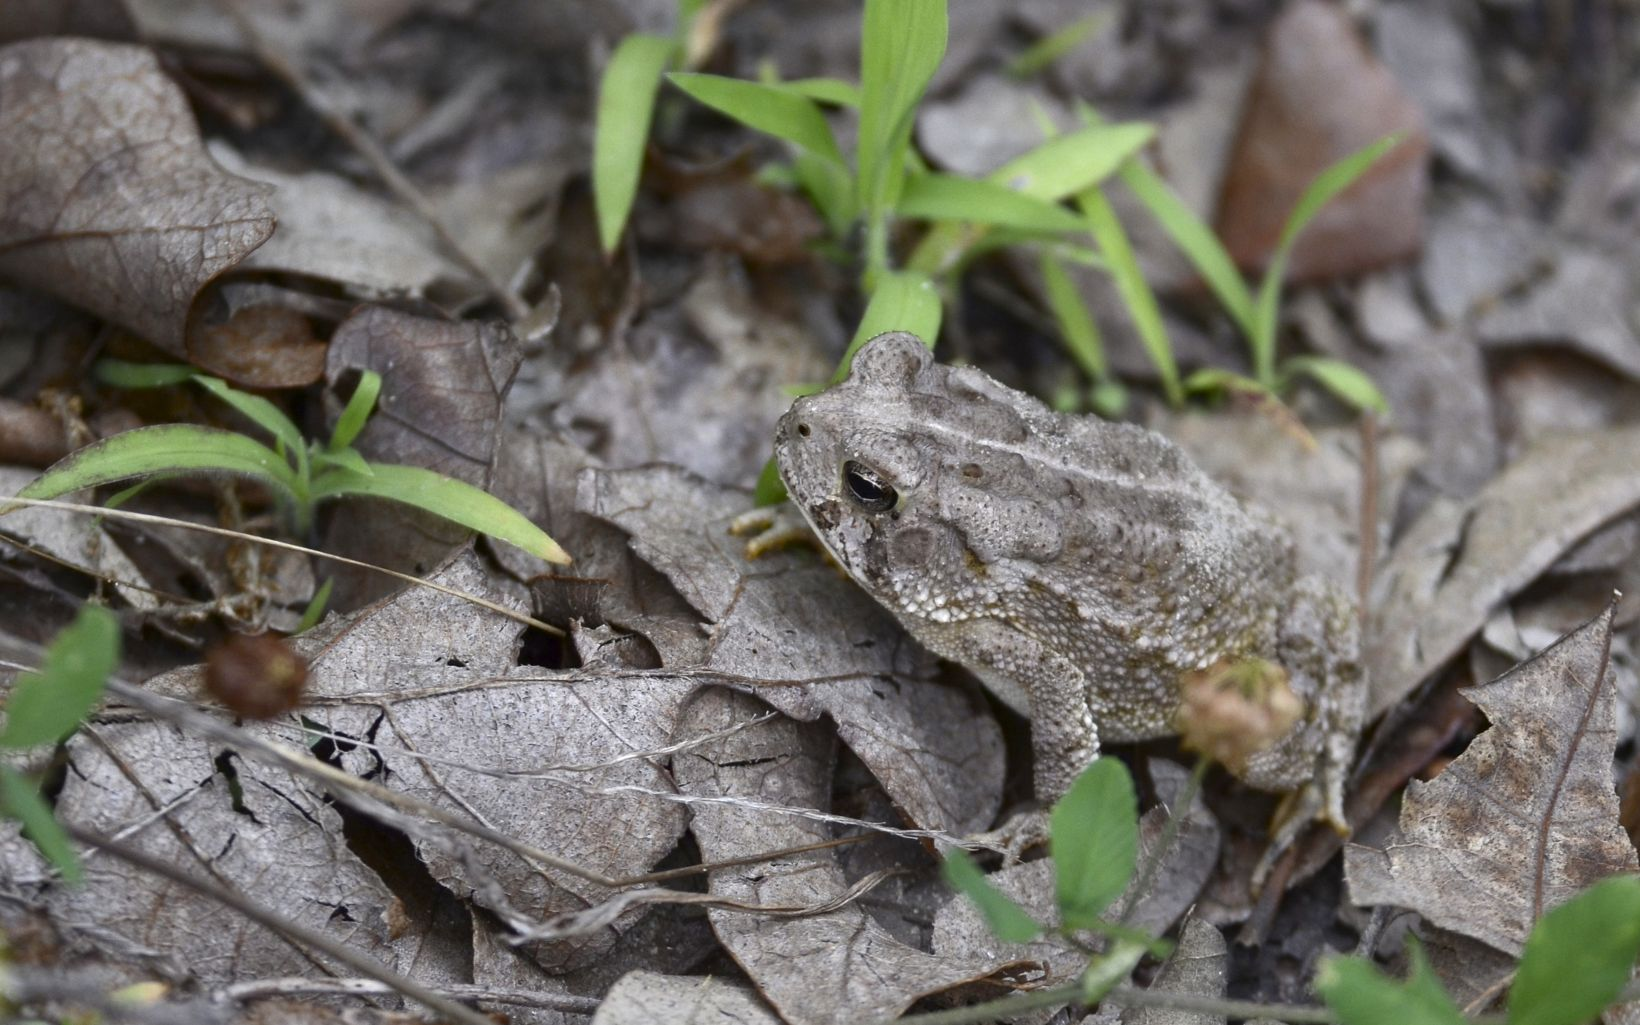 Nearly camouflaged among the leaves, the woodhouse toad sits patiently.